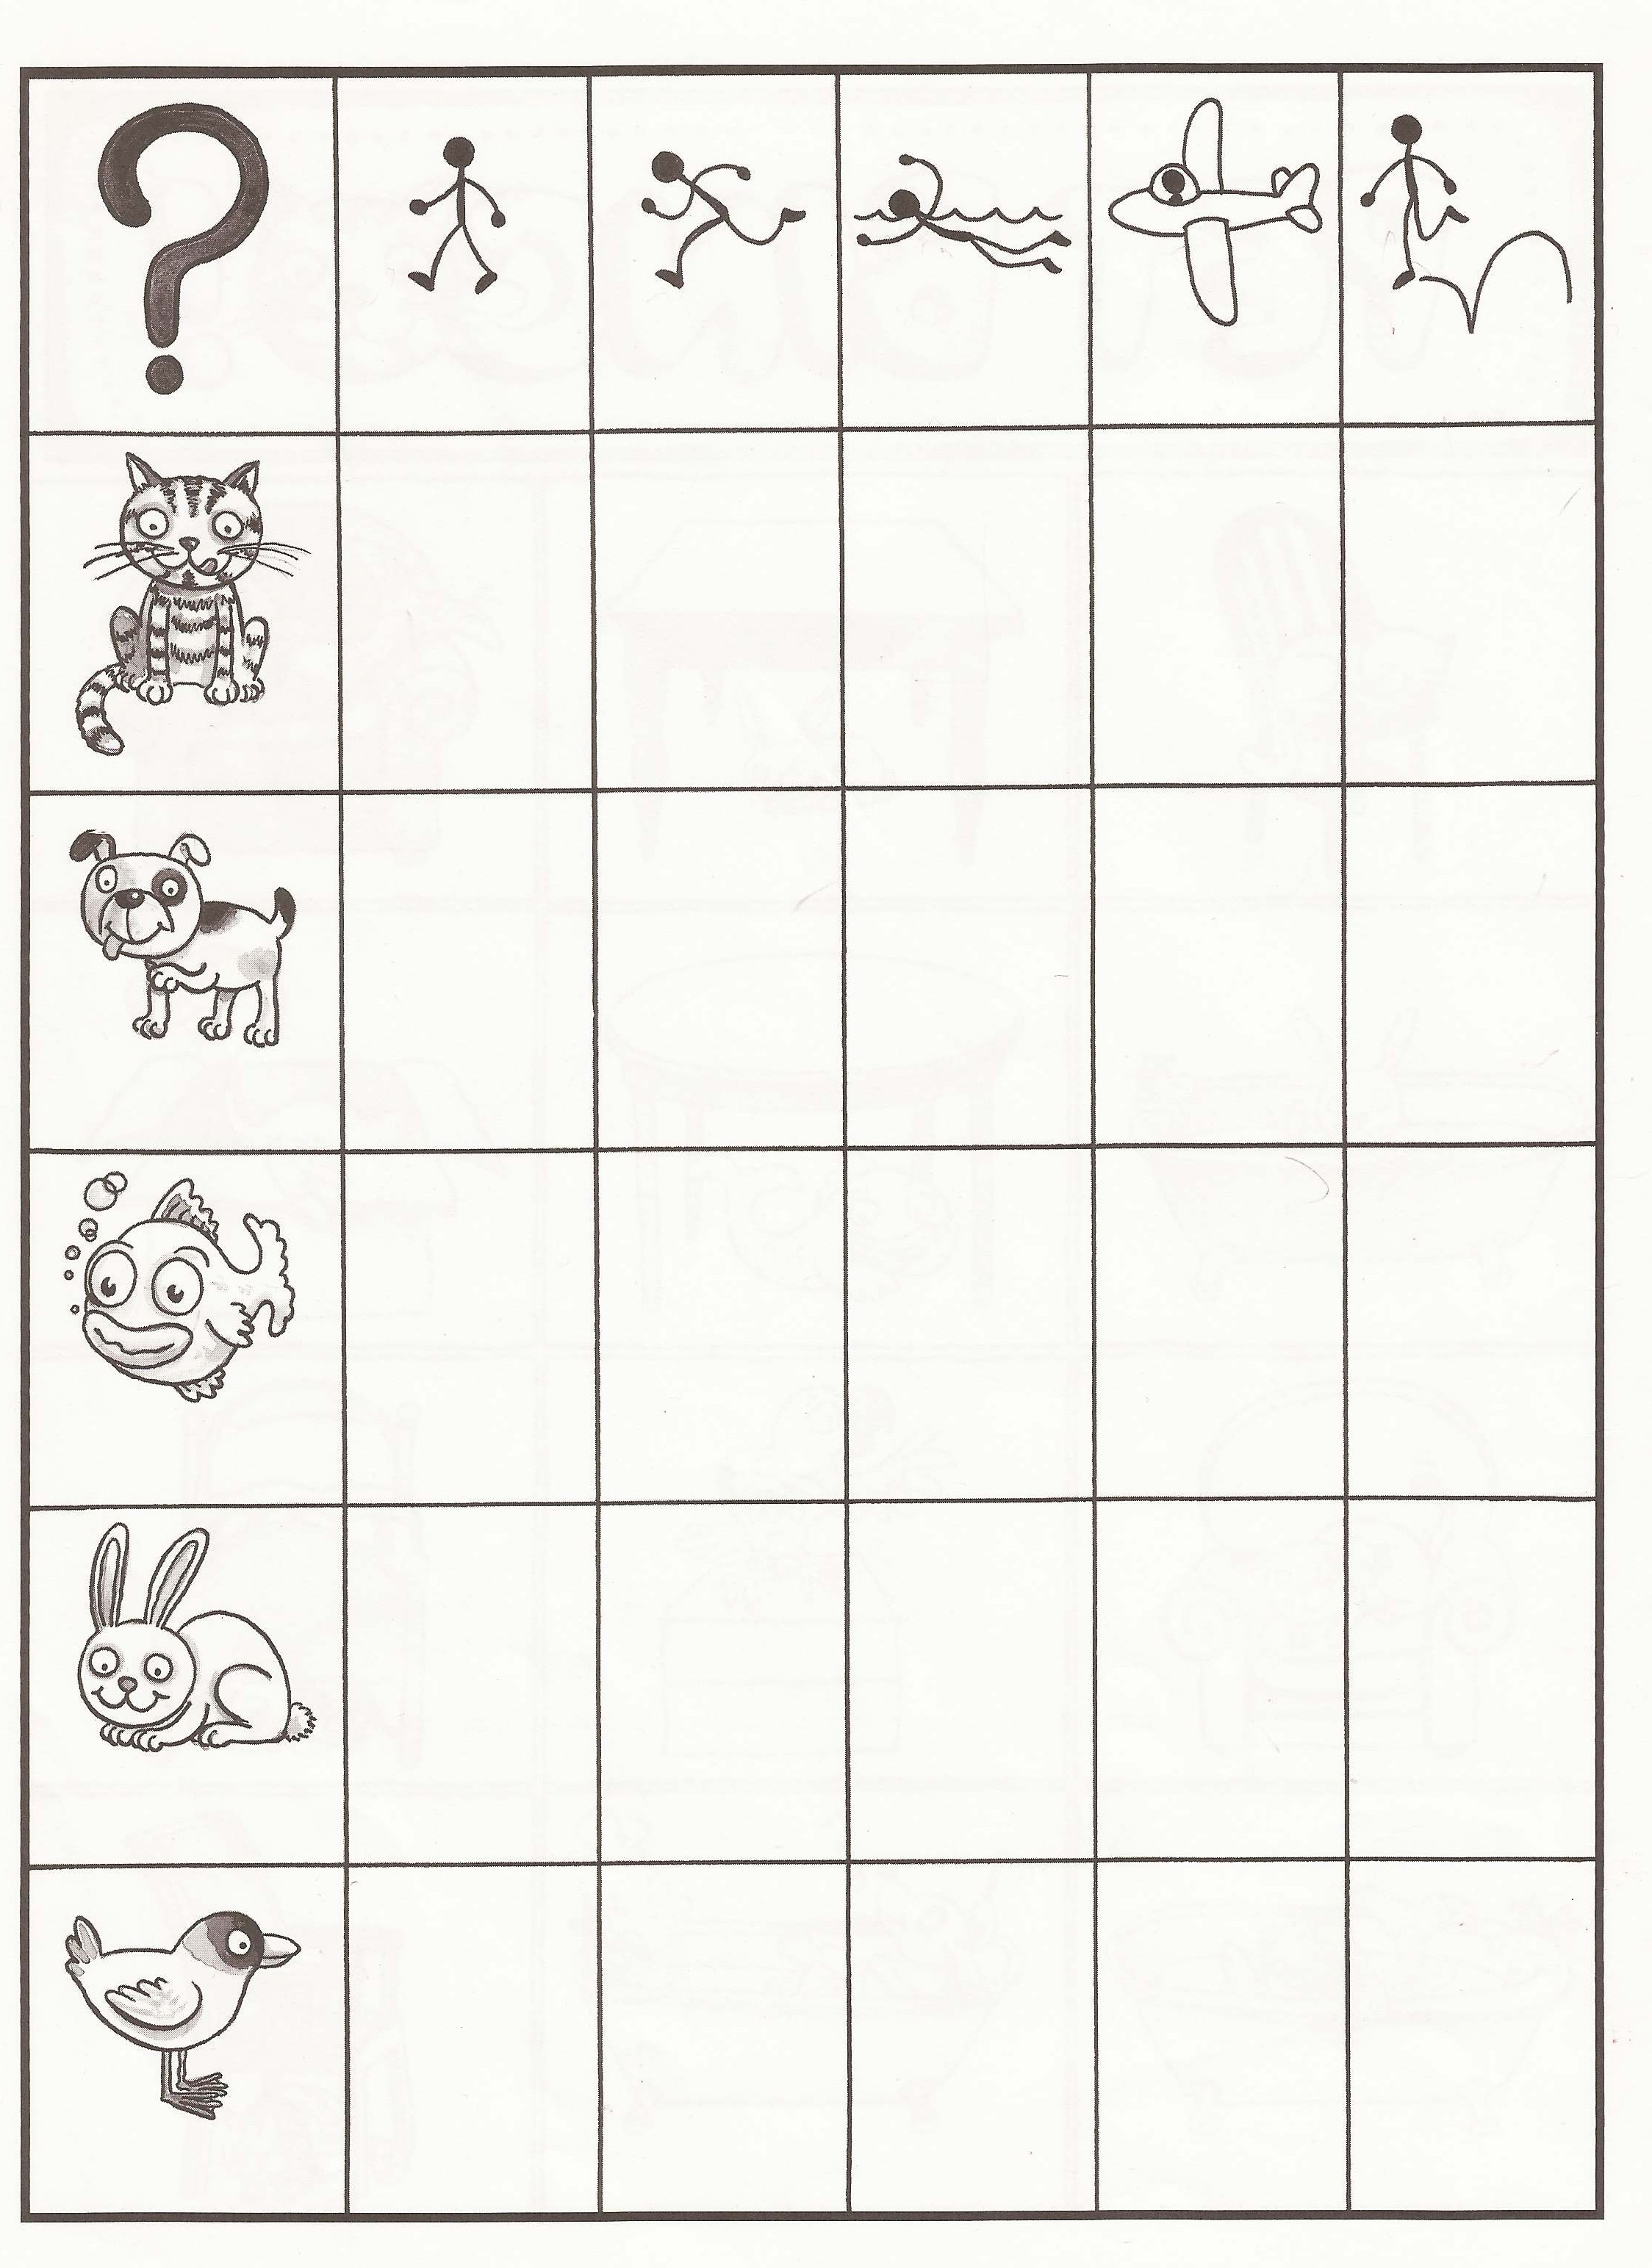 Animal Worksheet New 778 Animal Actions Worksheet